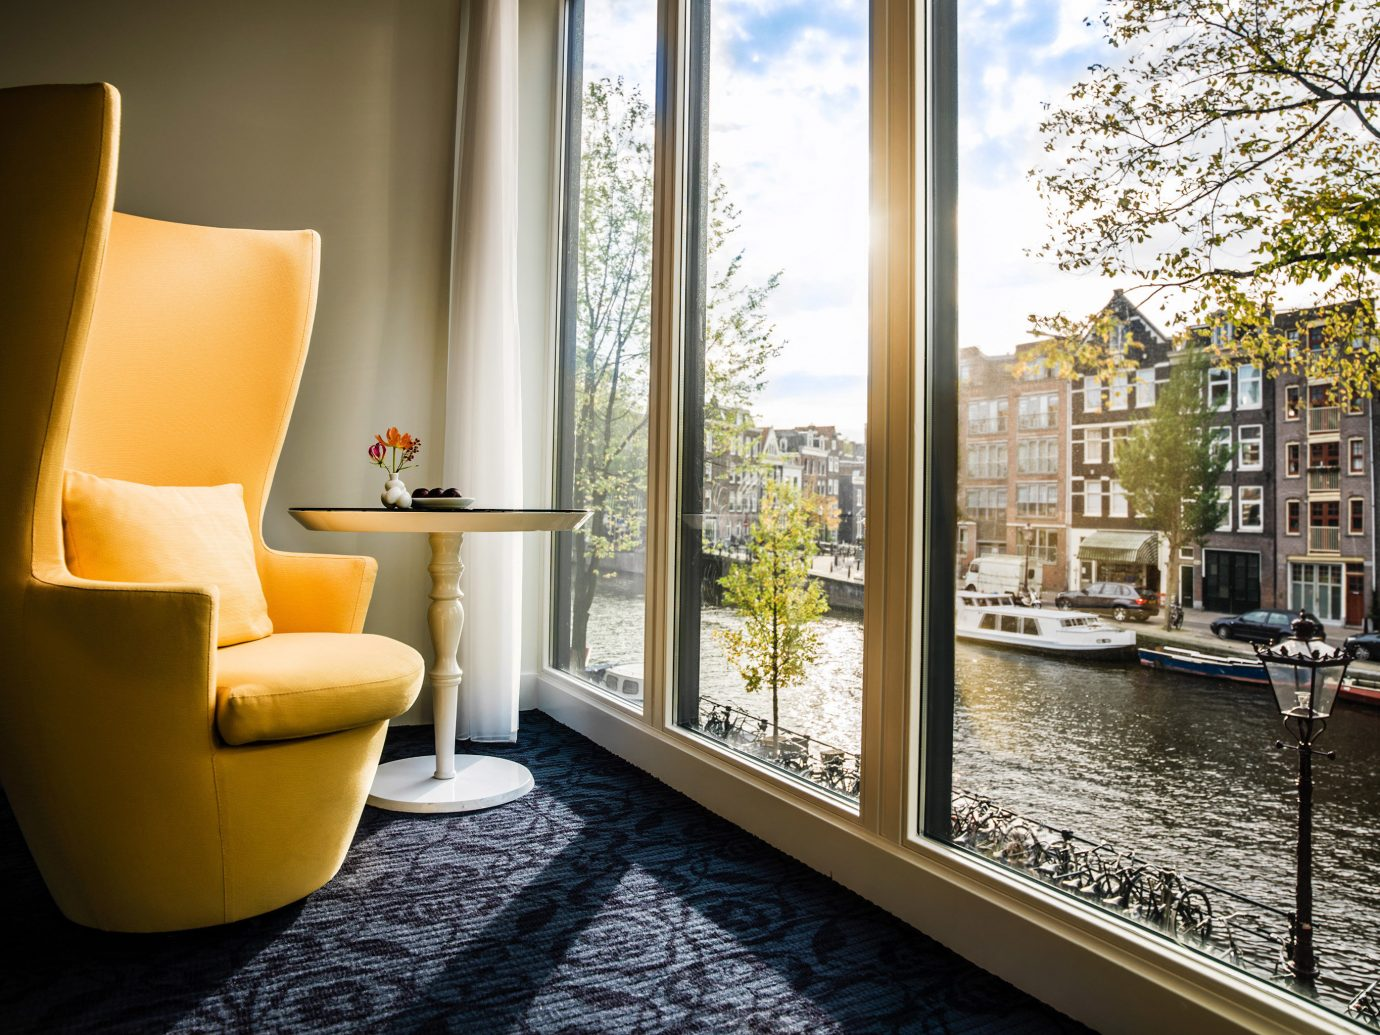 Amsterdam Boutique Hotels Hip Hotels Living Lounge Luxury Modern The Netherlands property room indoor floor home interior design living room condominium estate Design Lobby window flooring apartment furniture